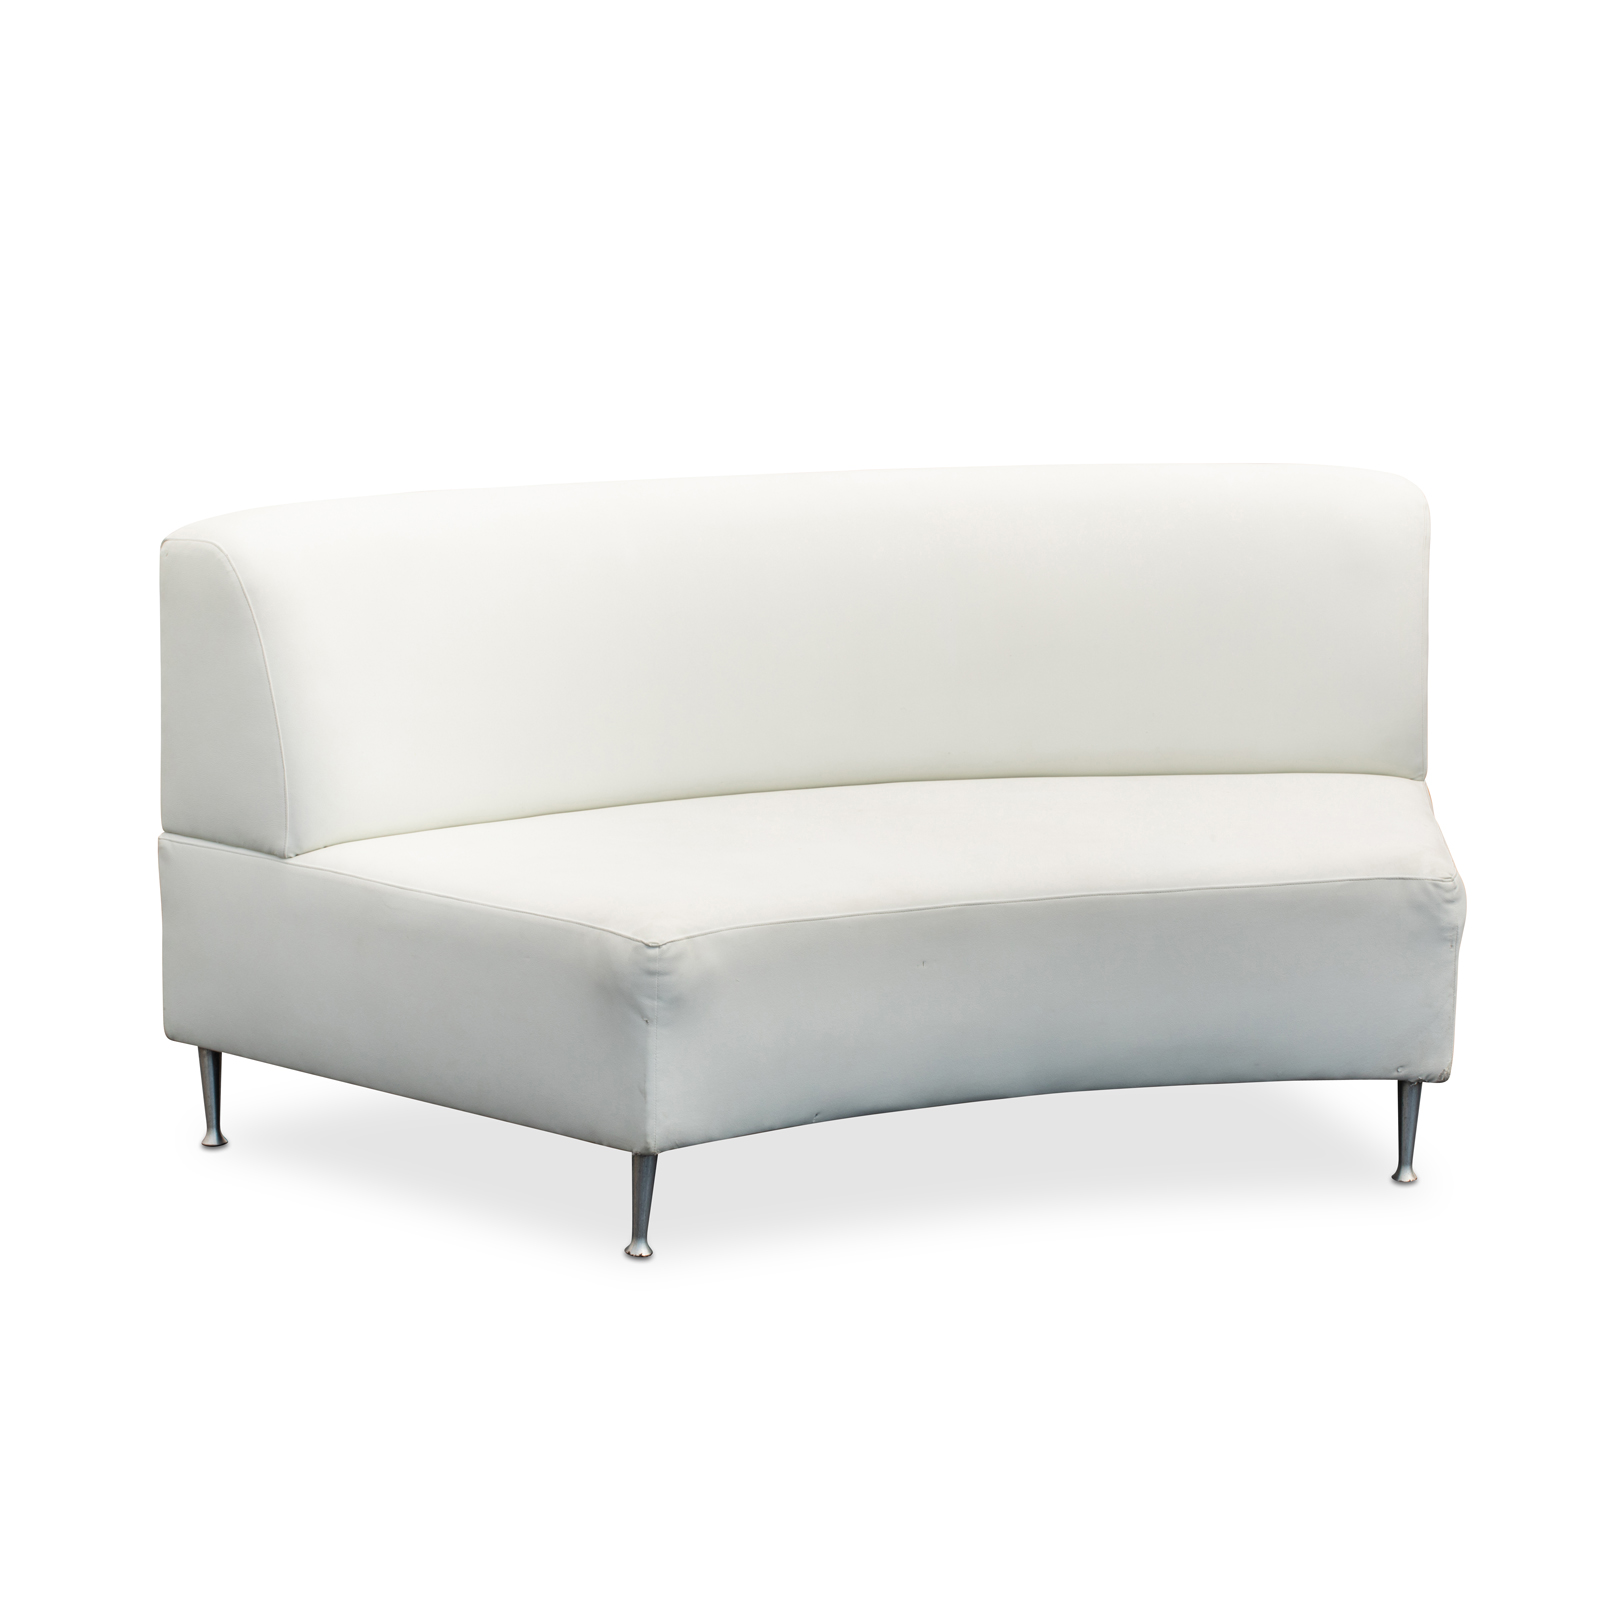 Lounge Furniture White Curved Sofa W